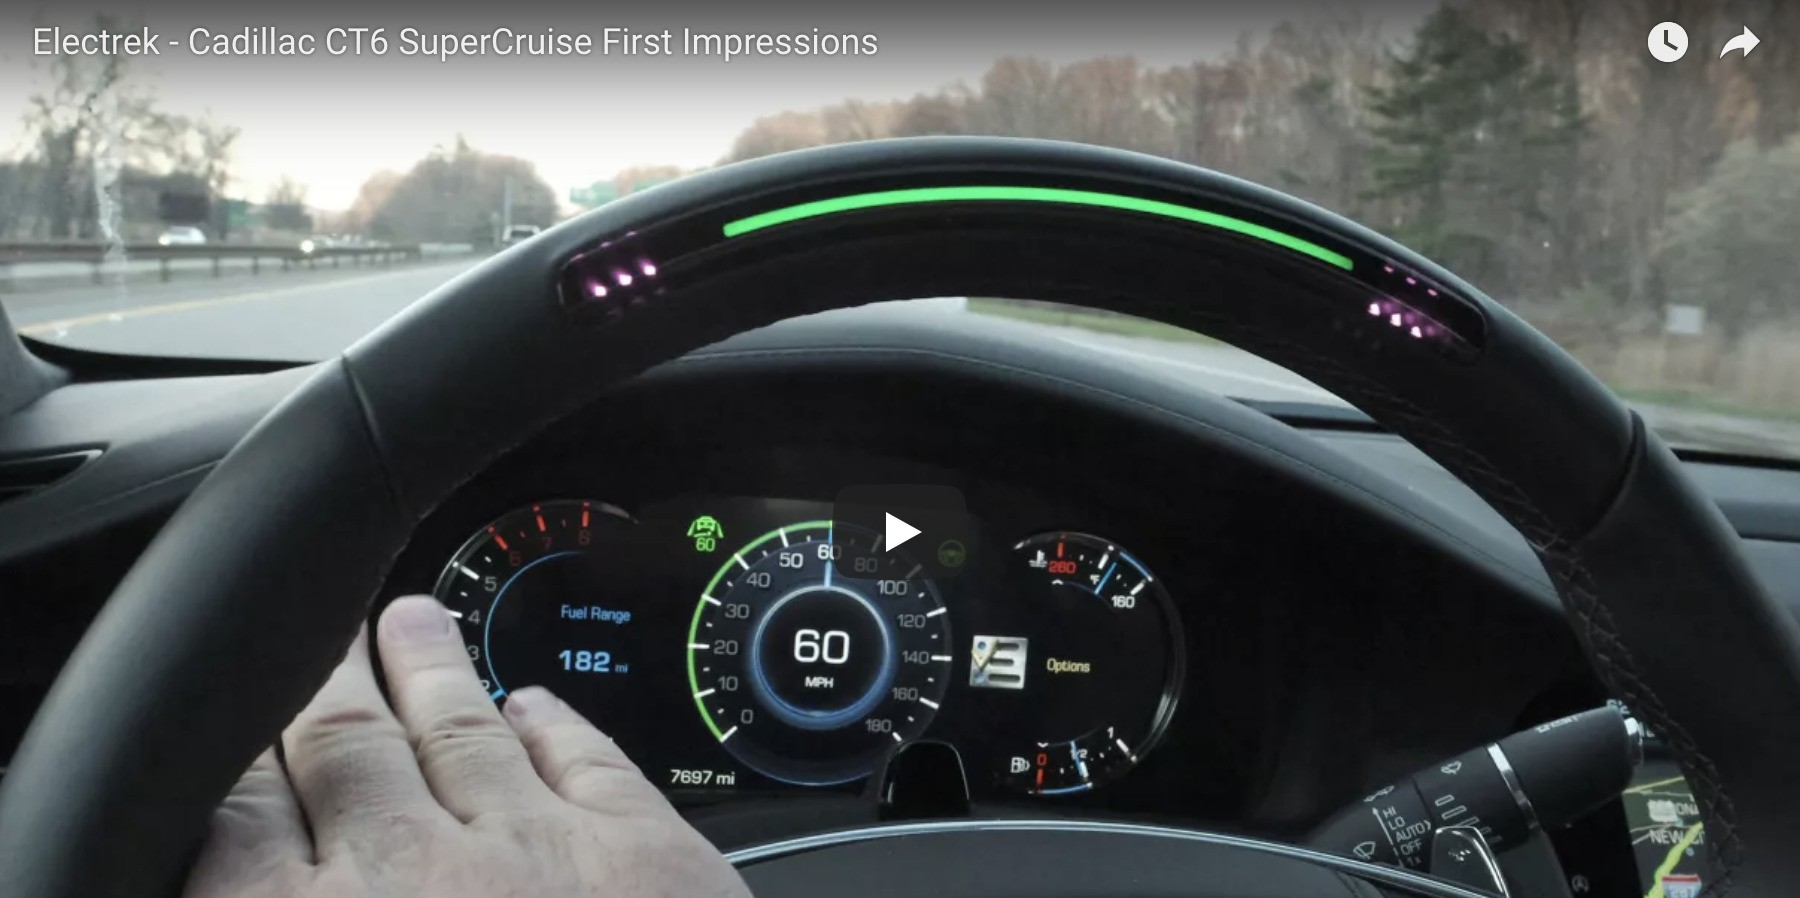 Tesla Autopilot loses to GM Super Cruise due to lack of driver monitoring in industry-wide test - Electrek